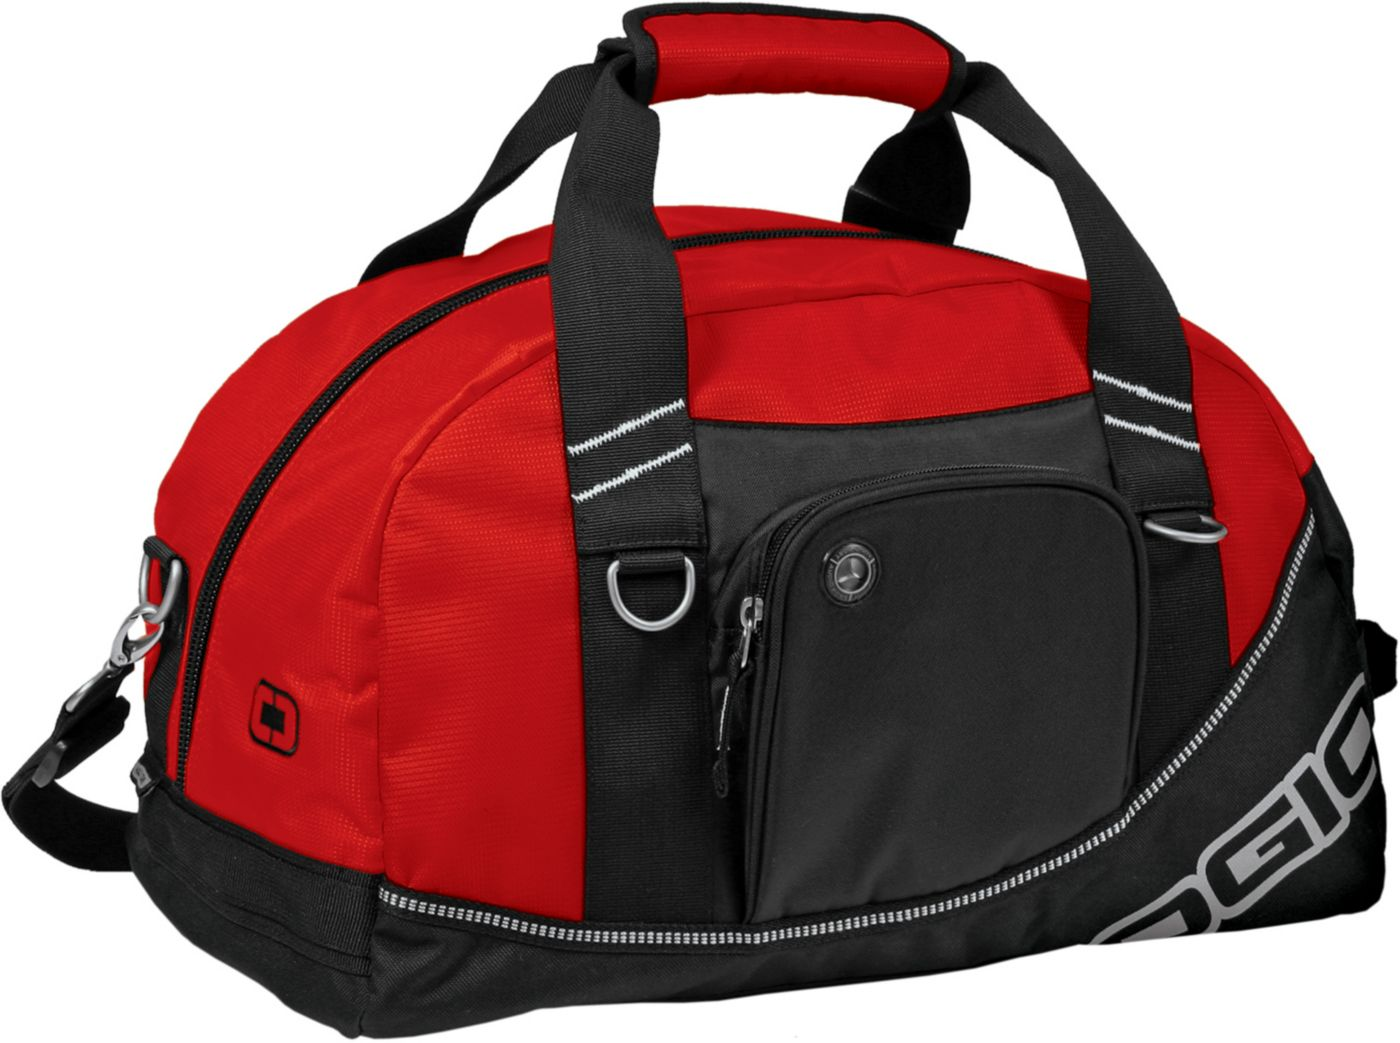 Ogio Half Dome Duffel Bag  Dicks Sporting Goods-4090